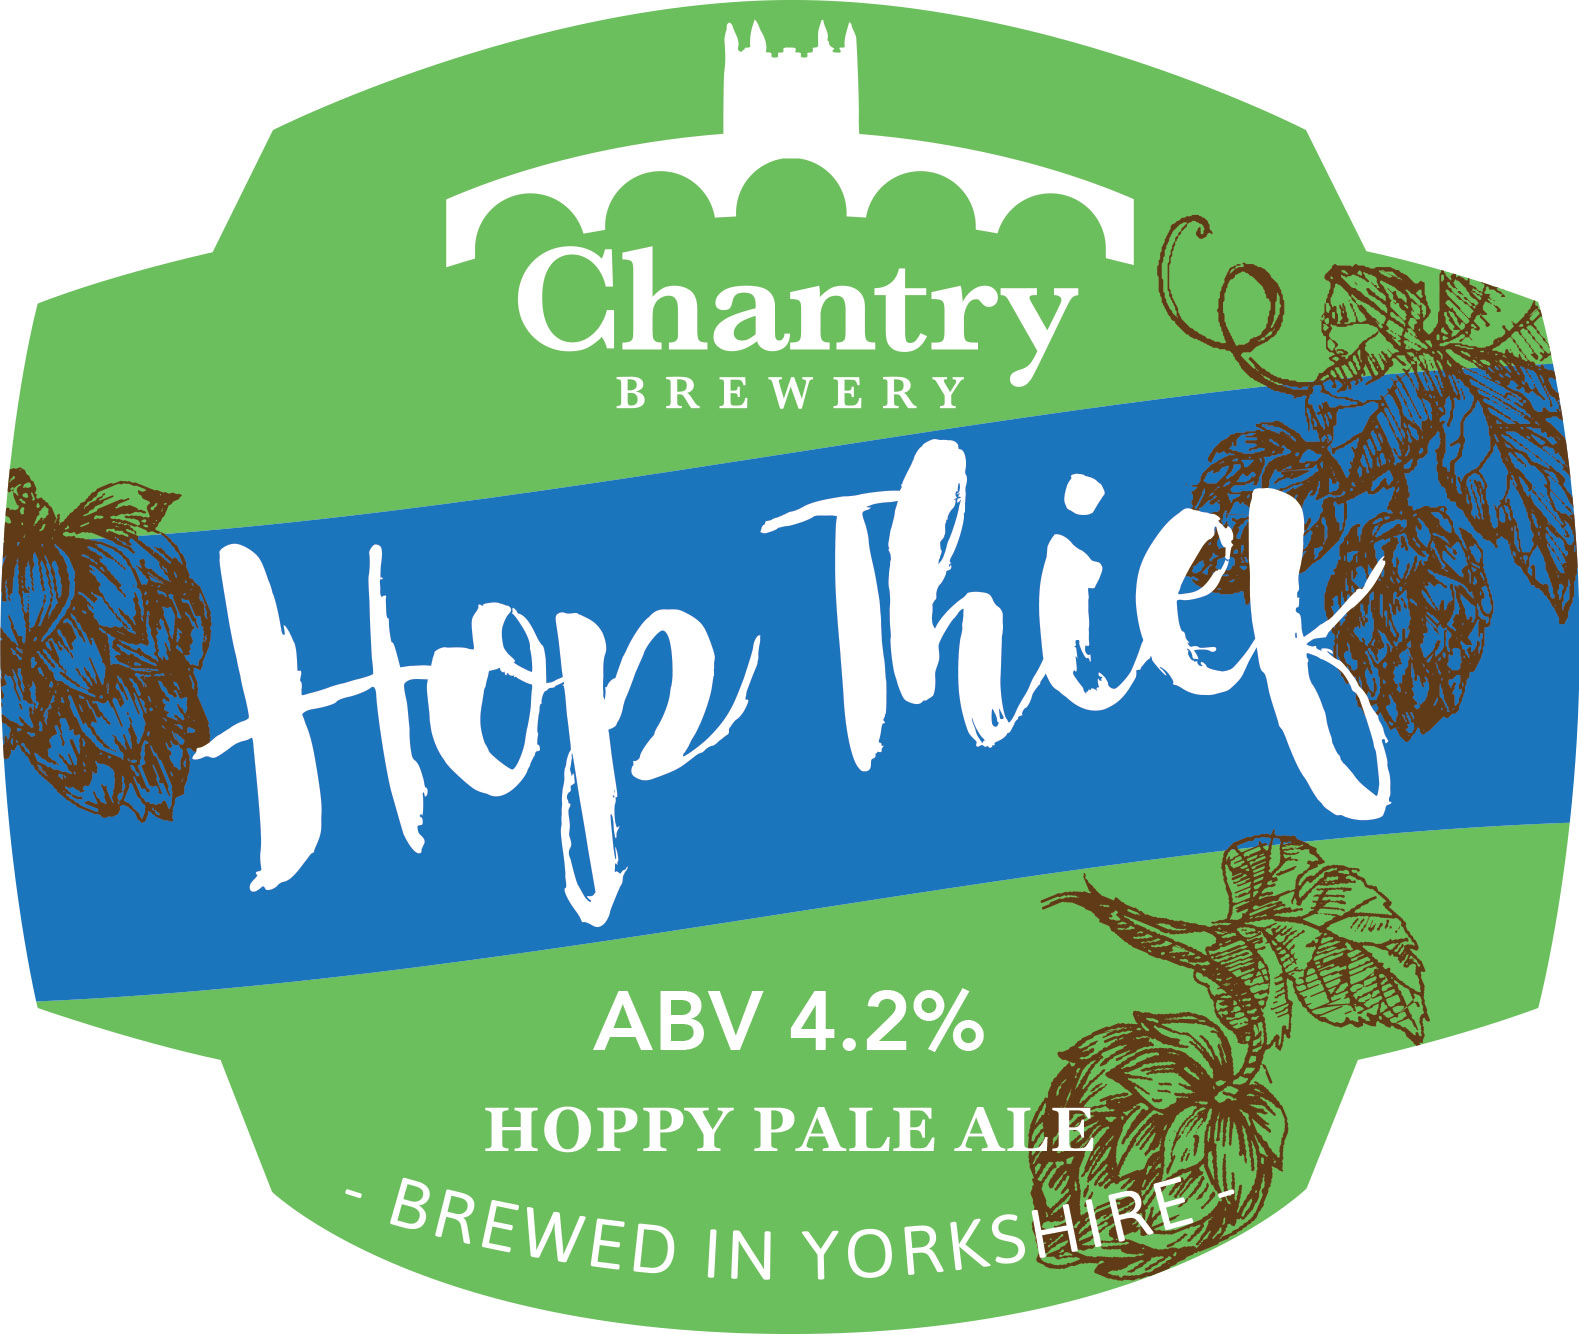 Chantry Brewery Hop Thief